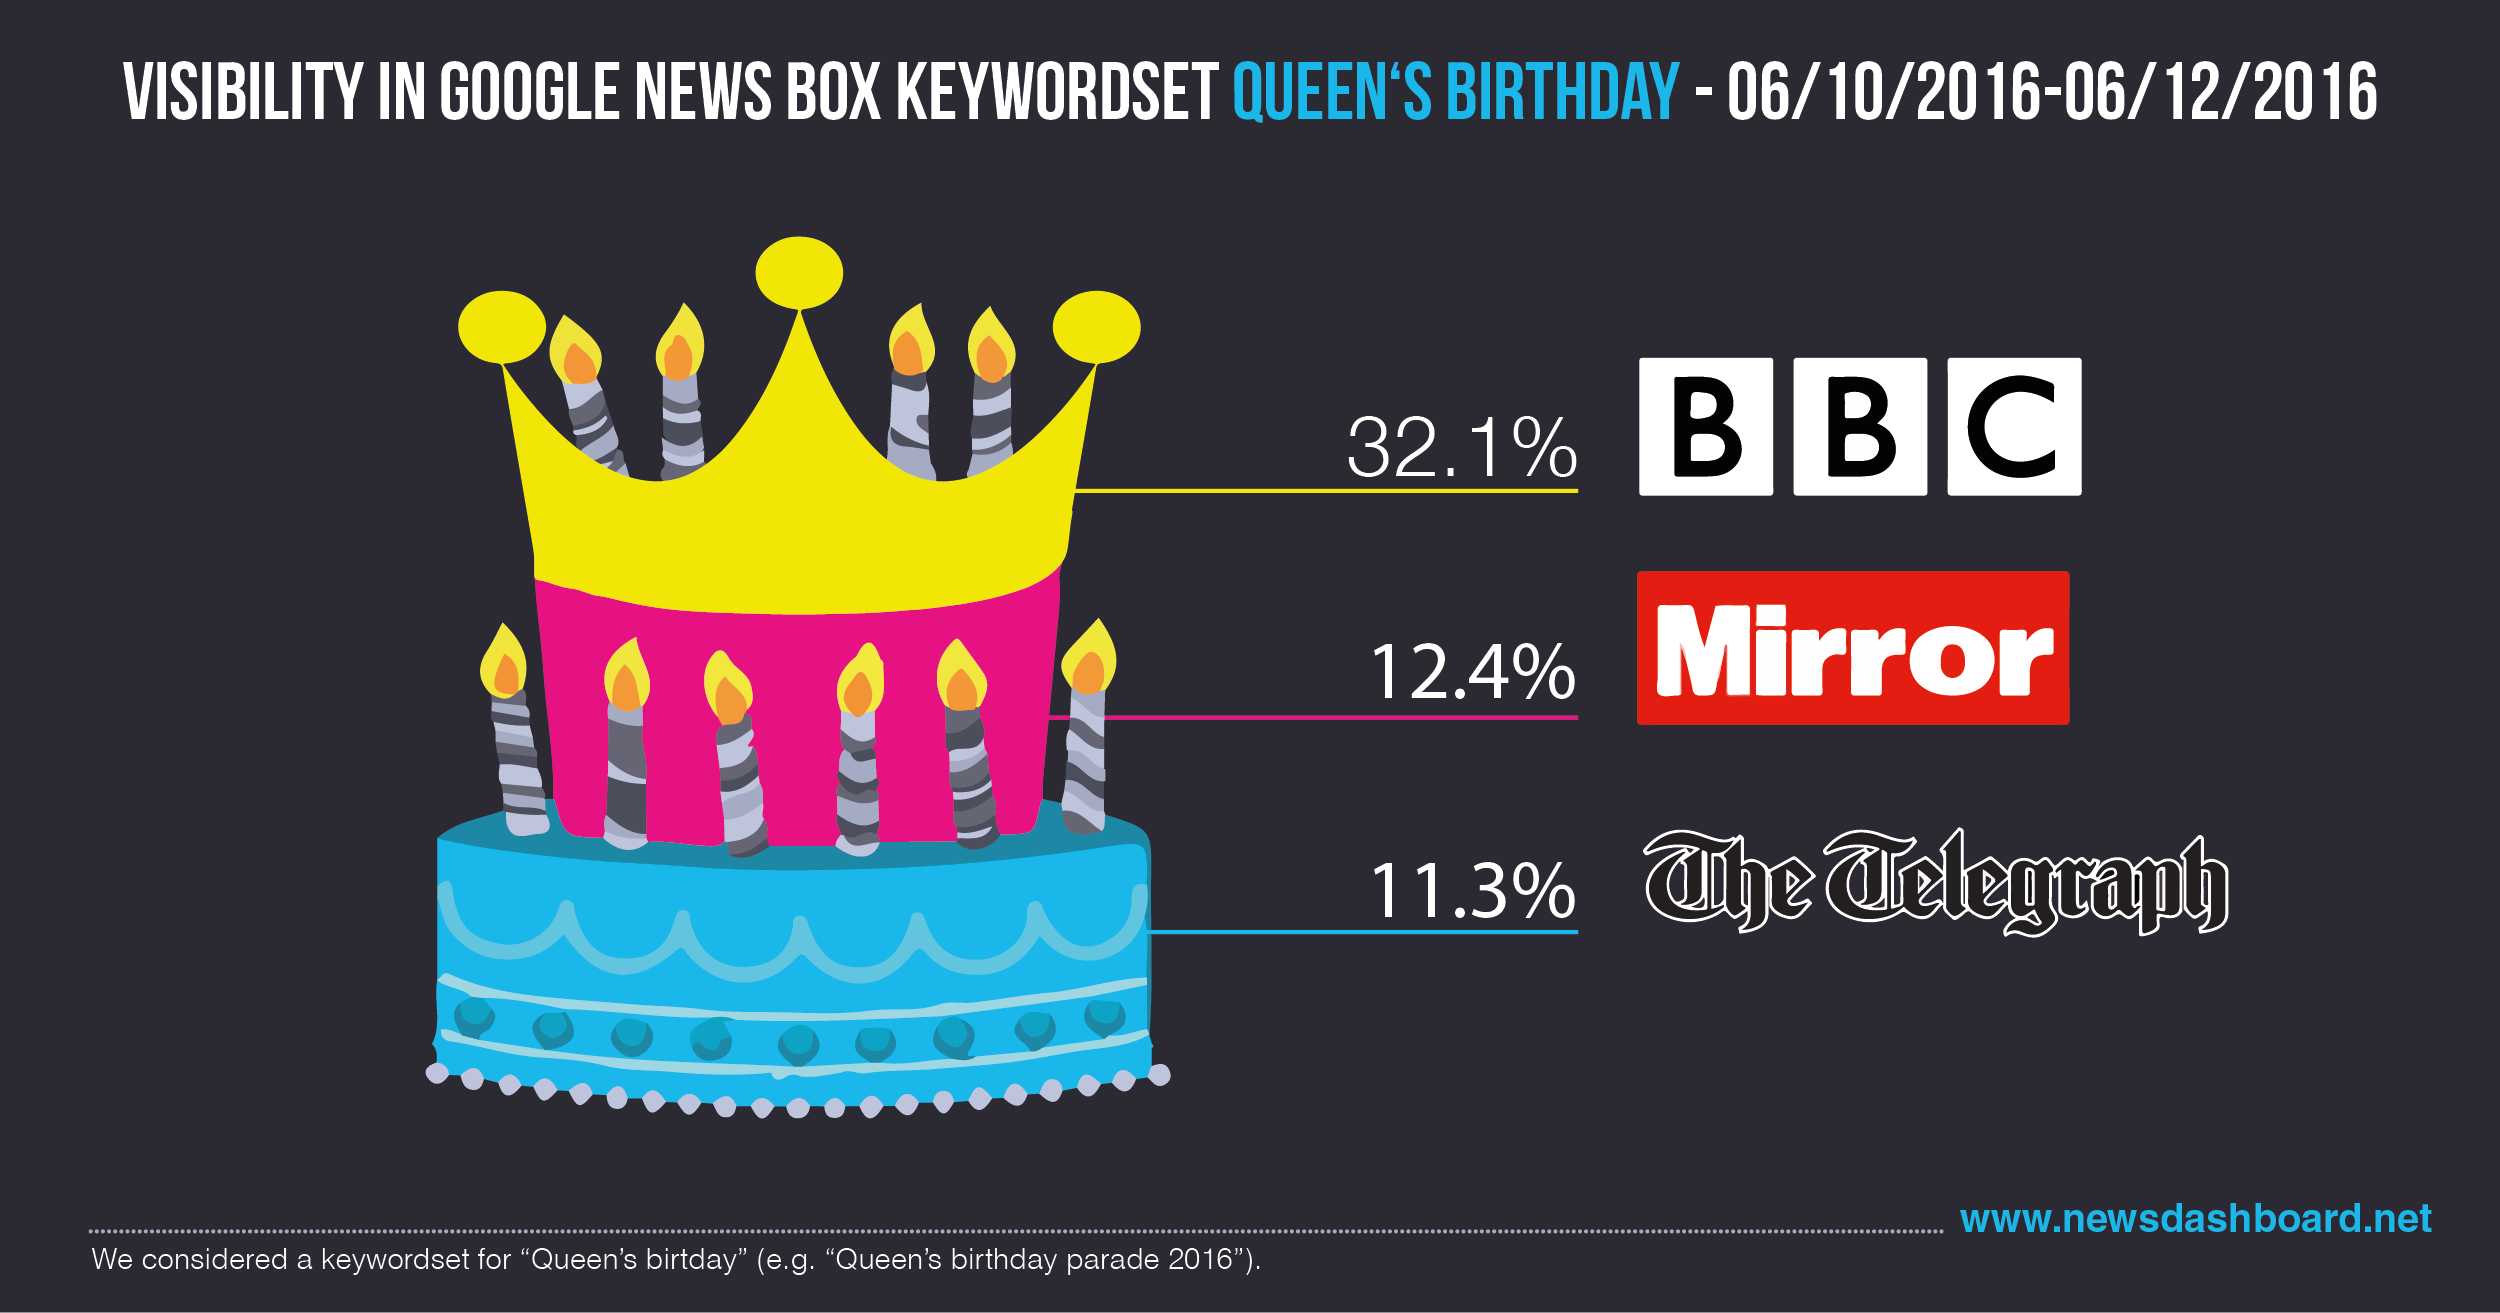 BBC.co.uk had a visibility in the Google News Boxes of 32.1 percent.